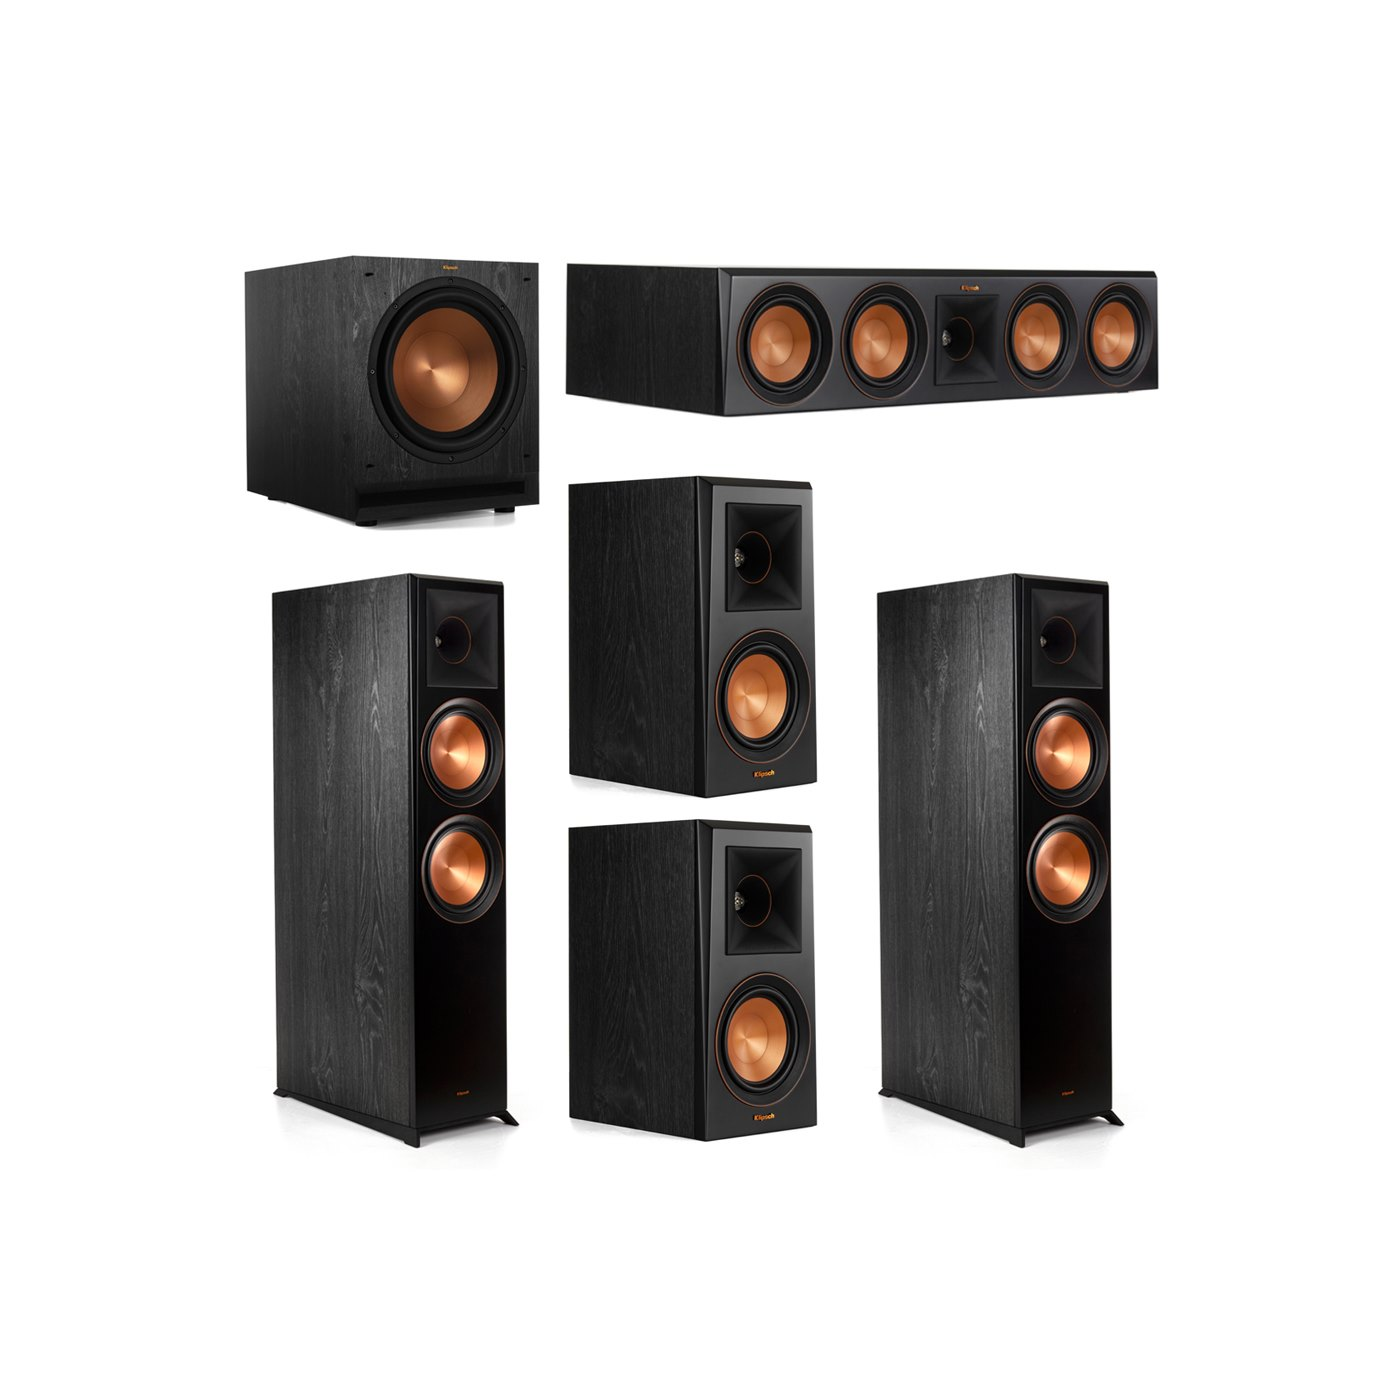 Klipsch 5.1.2 System - 2 RP-8060FA Dolby Atmos Speakers, 1 RP-504C, 2 RP-500M Speakers, 1 SPL-120